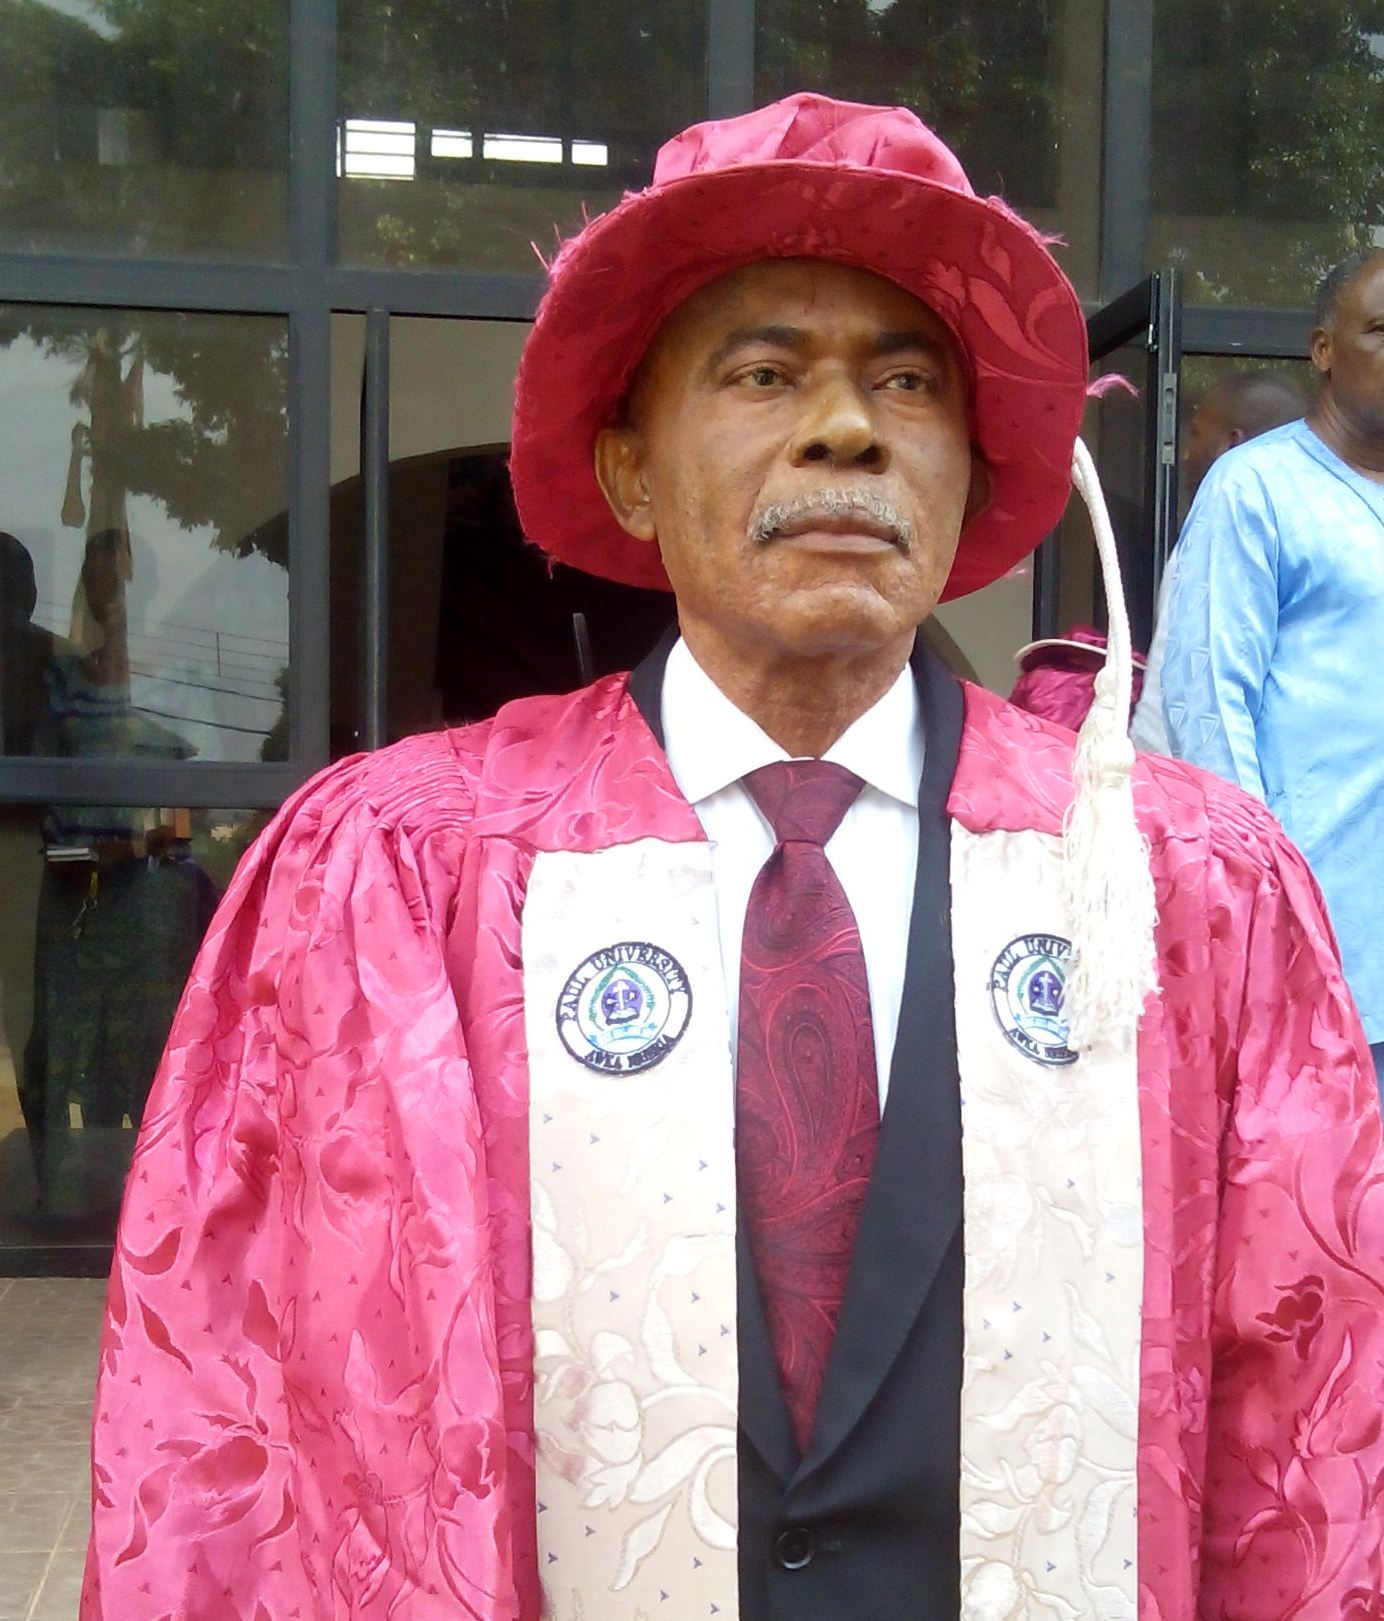 AN ADDRESS BY THE PRO-CHANCELLOR AND CHAIRMAN OF THE GOVERNING COUNCIL ON THE ON THE OCCASION OF THE 9TH MATRICULATION CEREMONY ON THURSDAY MARCH 07, 2019